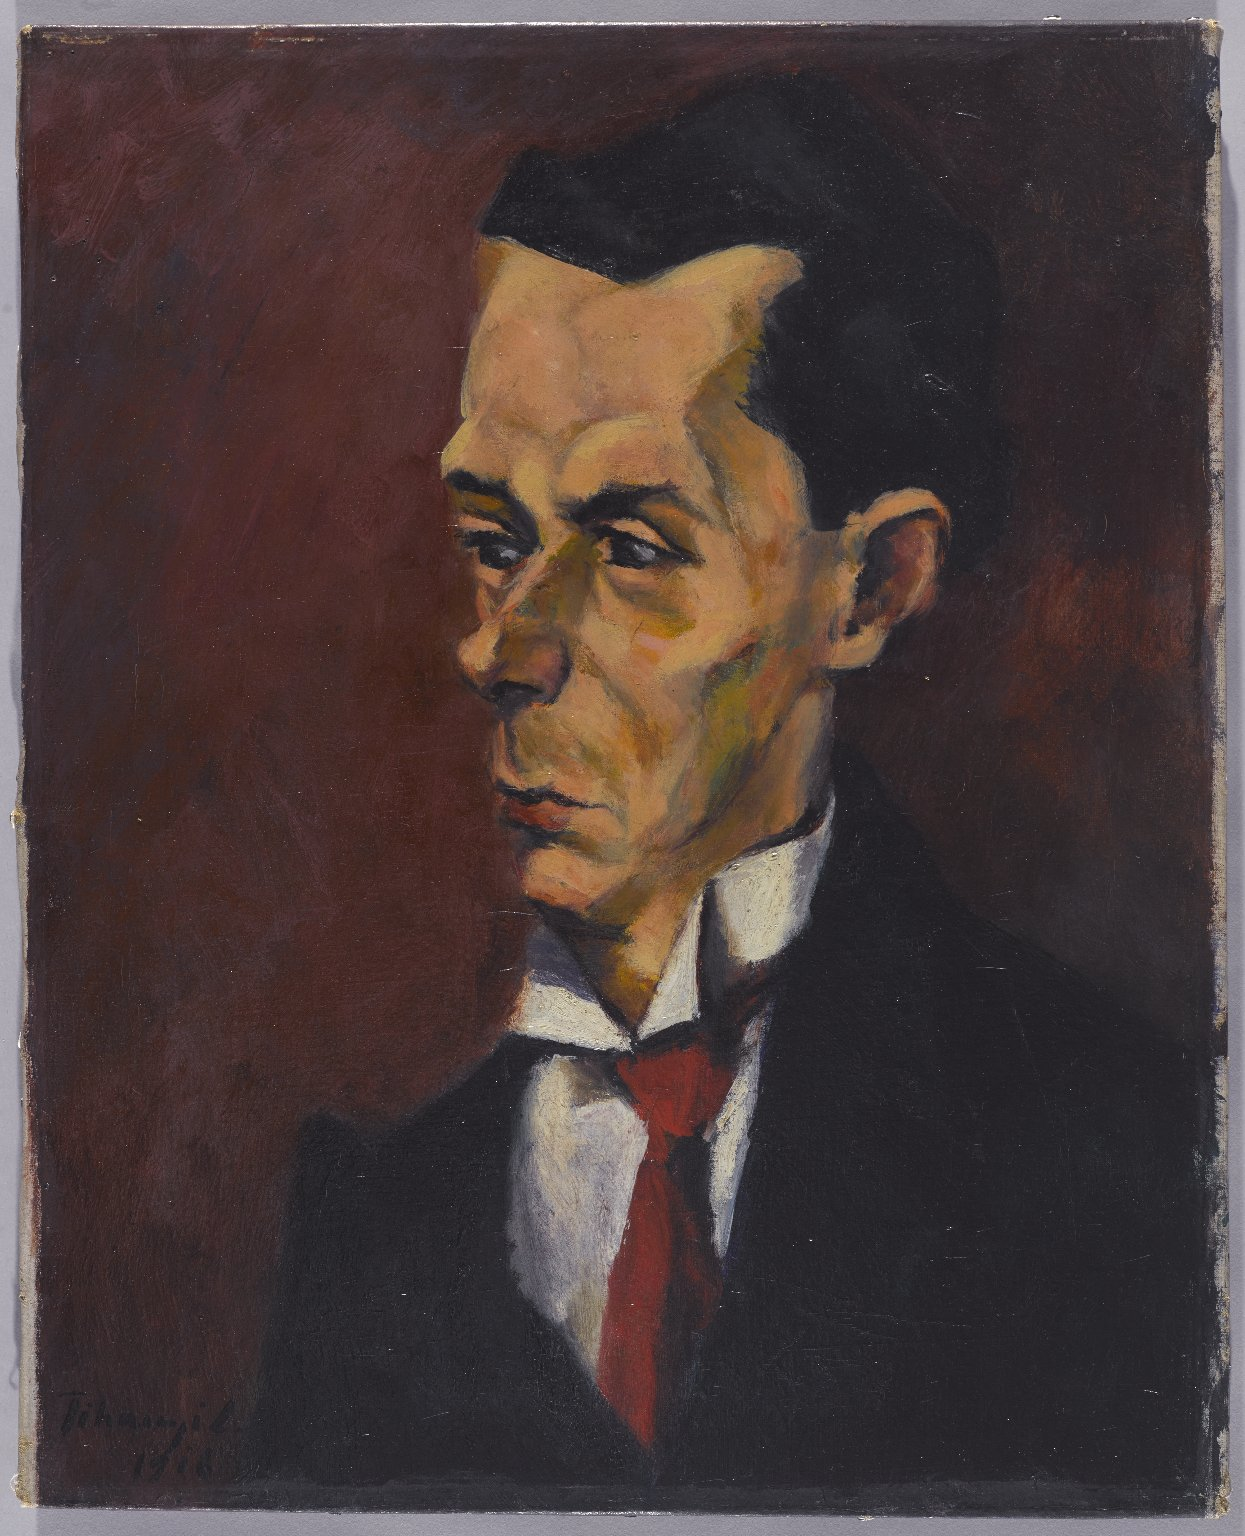 """Lajos Tihanyi, """"The Critic"""" (1916), oil on canvas, 20 1/8 x 16 3/8 in (51.1 x 41.6 cm), Brooklyn Museum, Gift of the Right Reverend John Torok, D.D. (image courtesy the Brooklyn Museum)"""